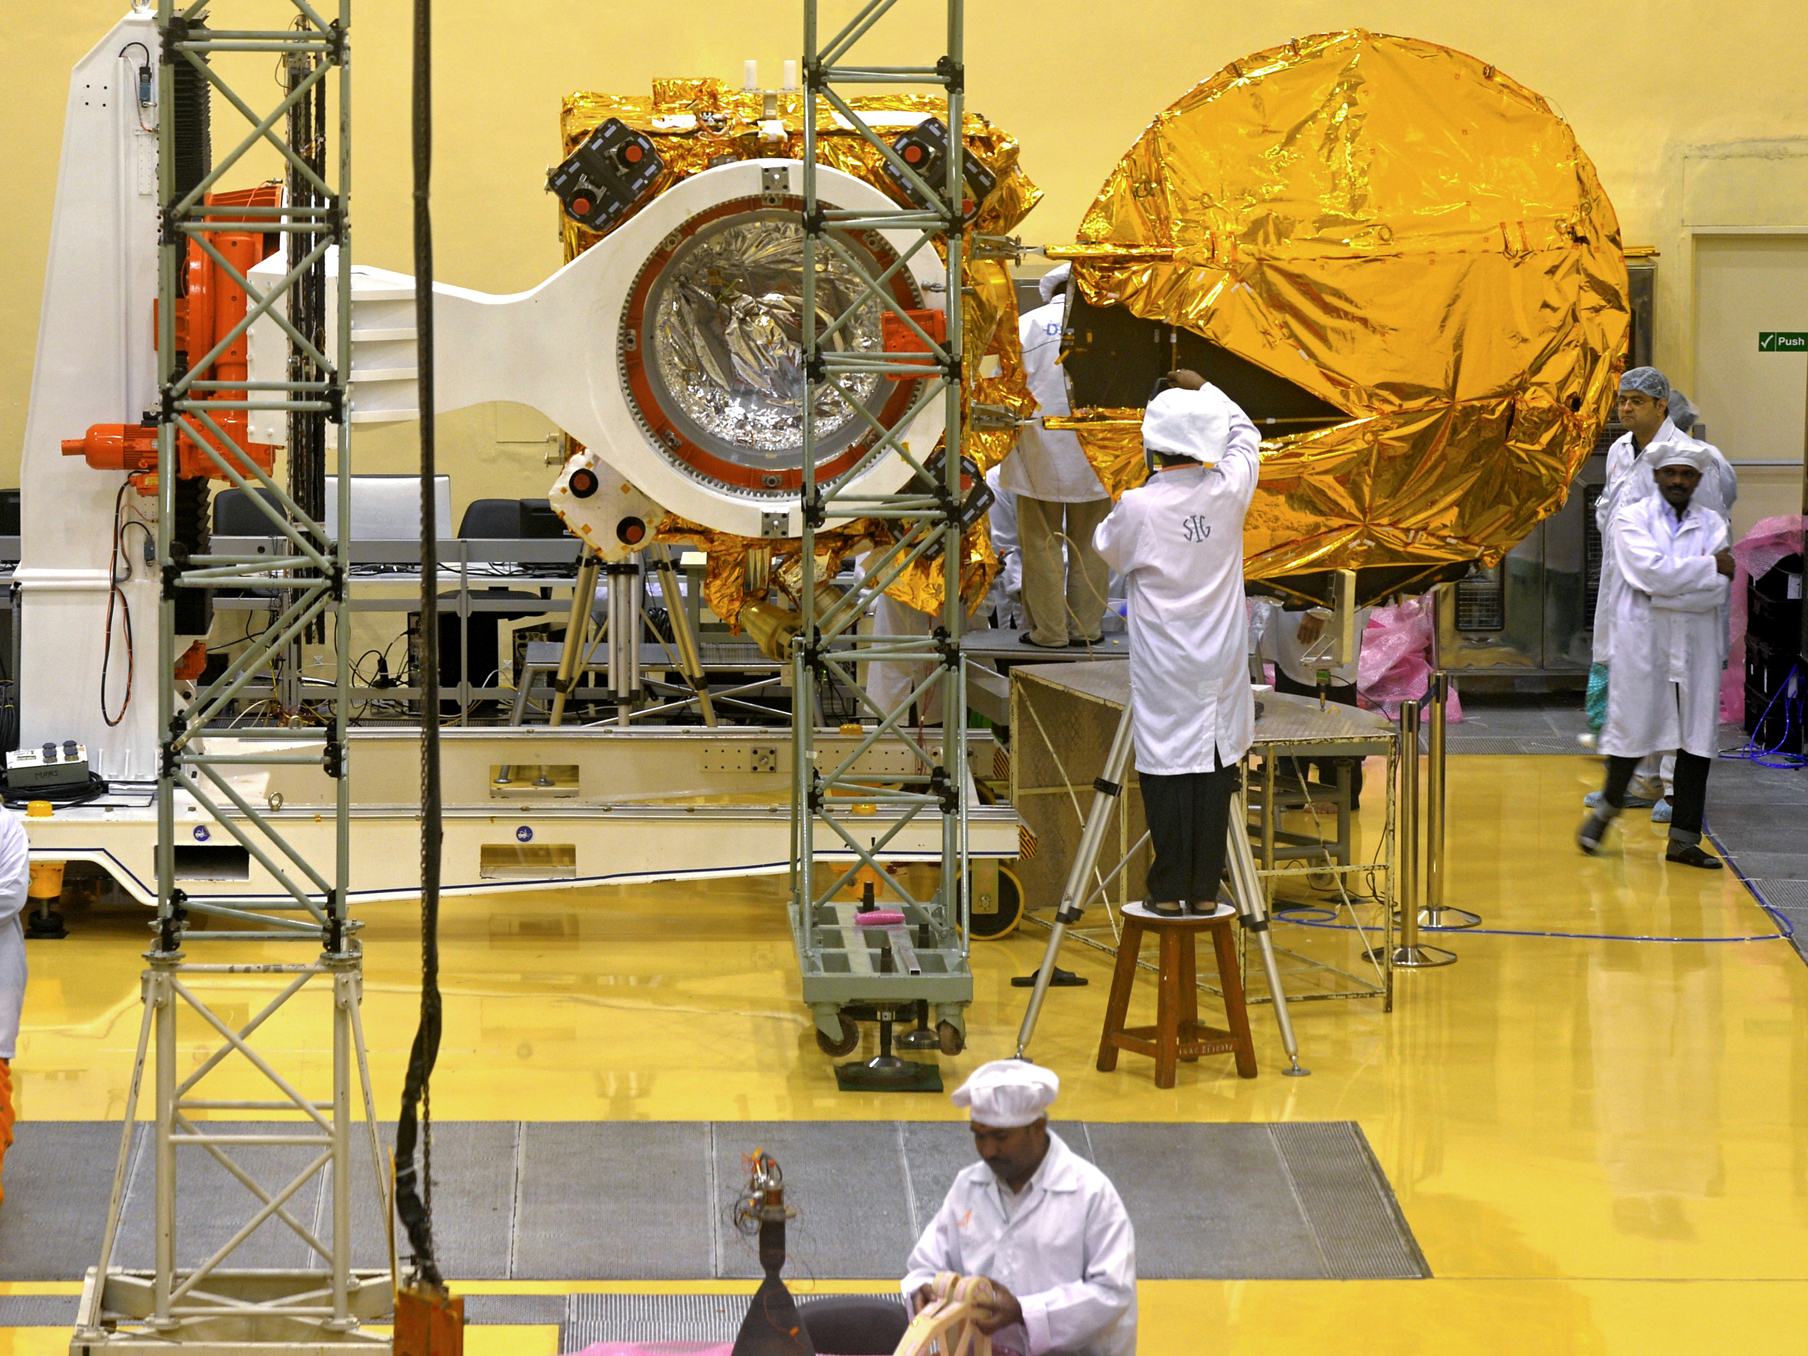 India Zooms To Mars Much More Cheaply, But With Trade-Offs